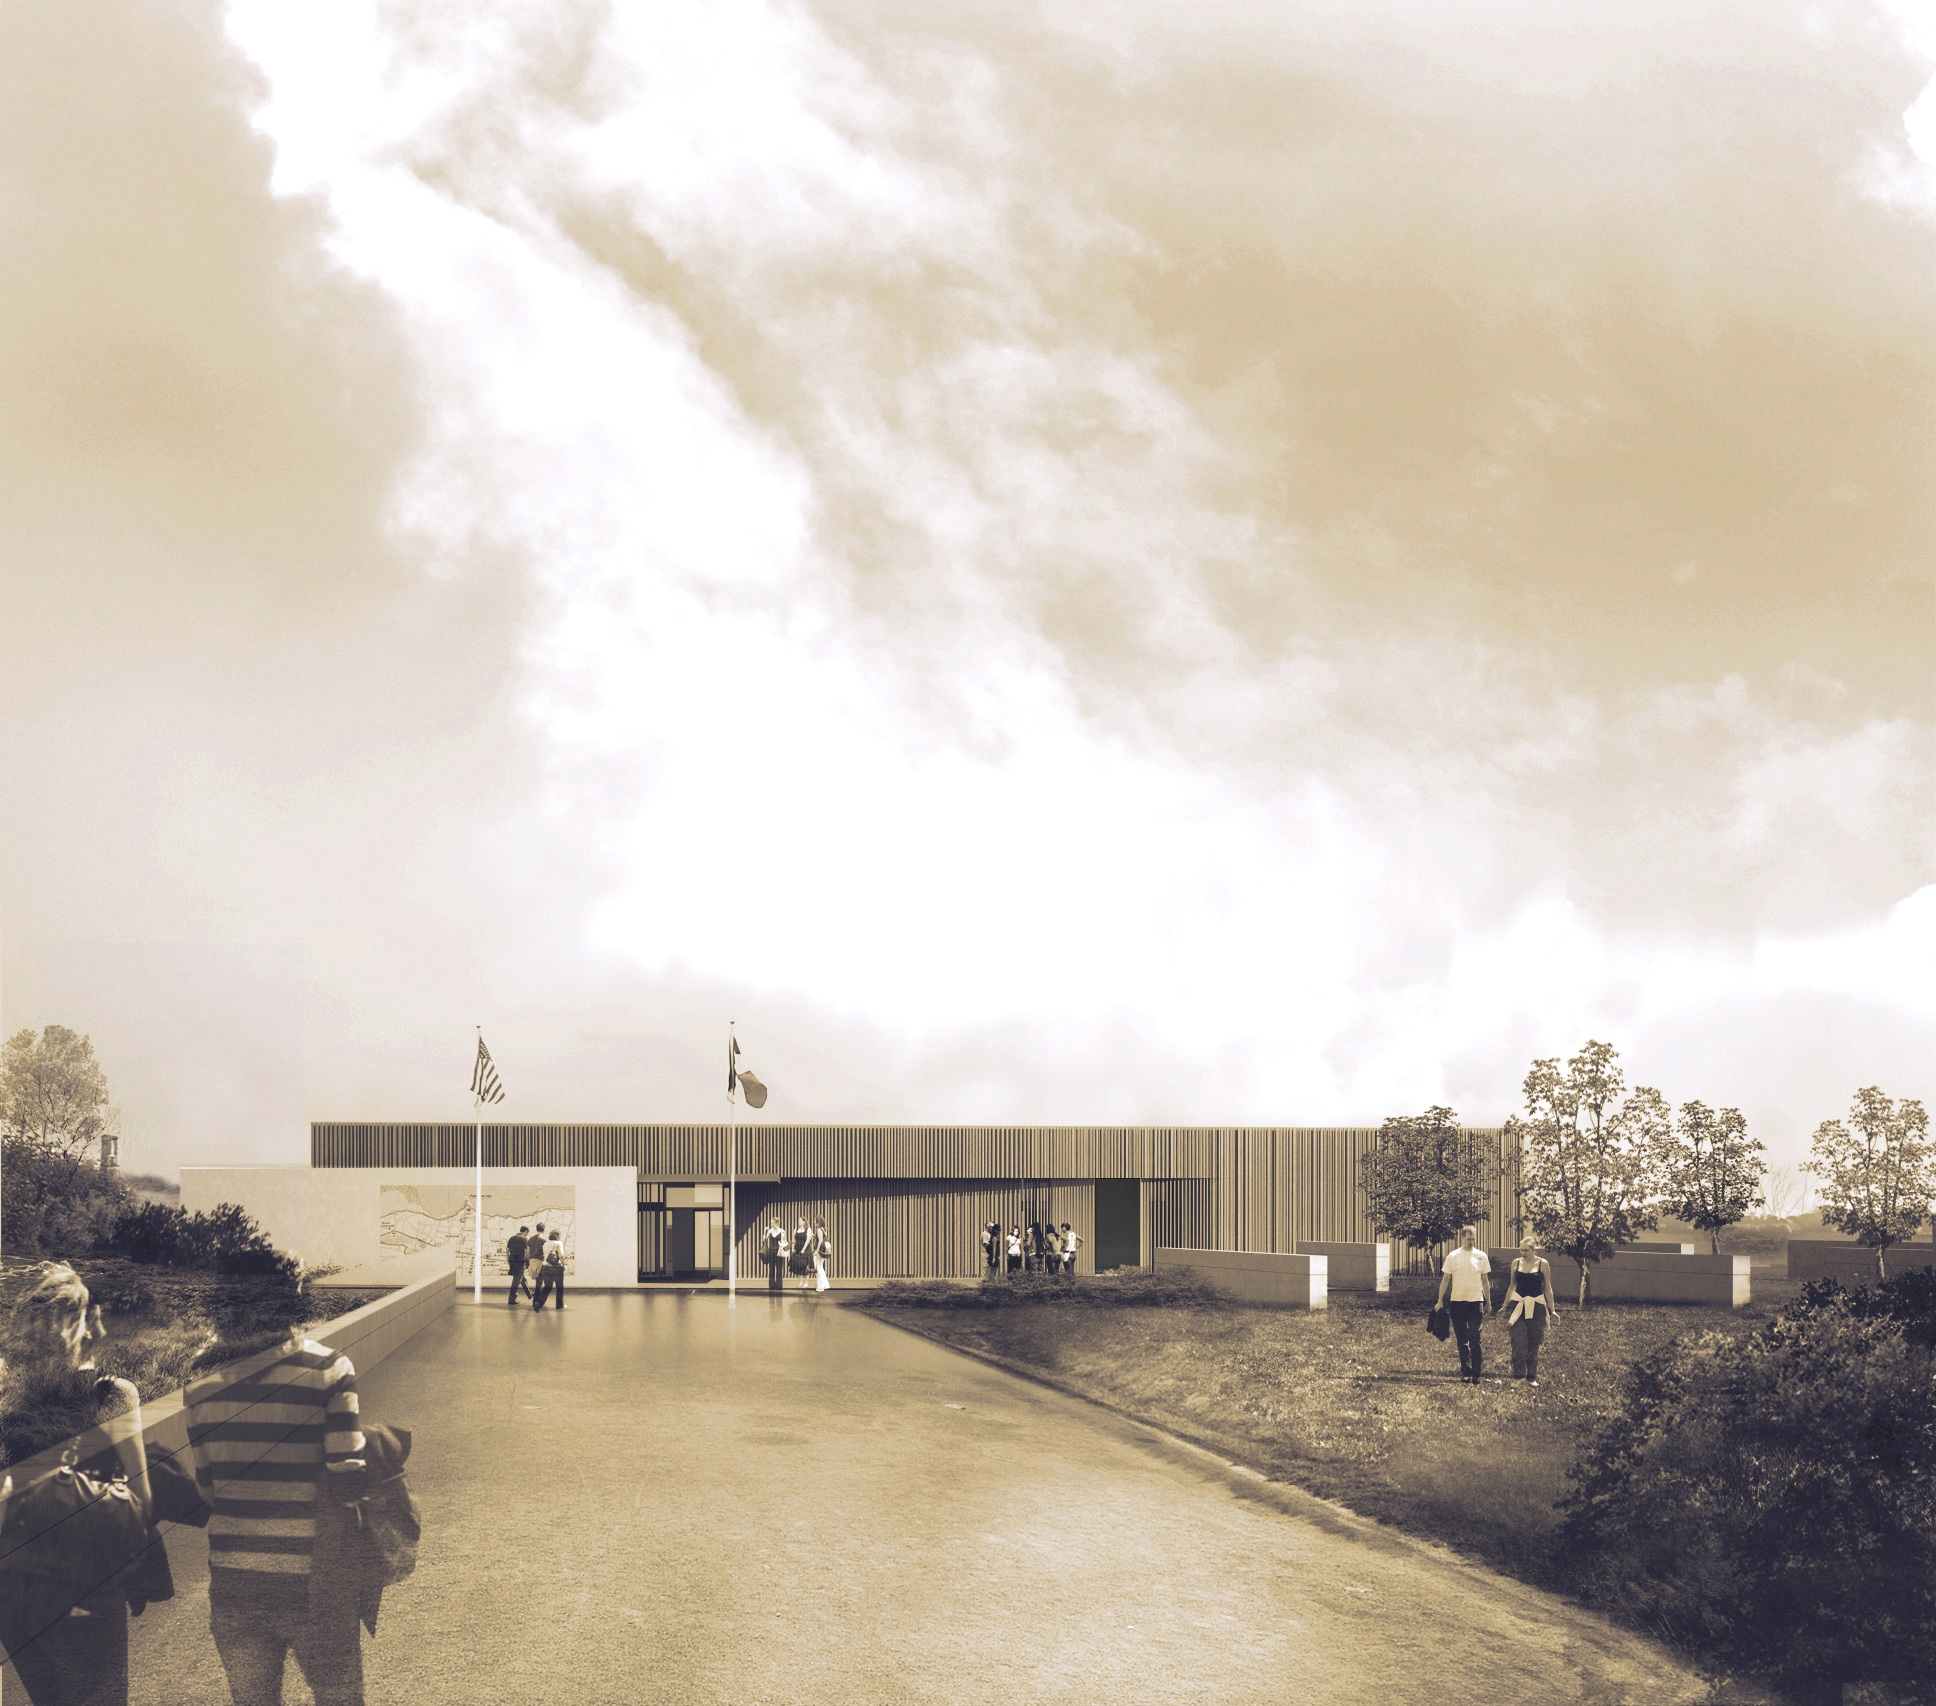 Rendering of walkway to the new visitor center at Pointe du Hoc